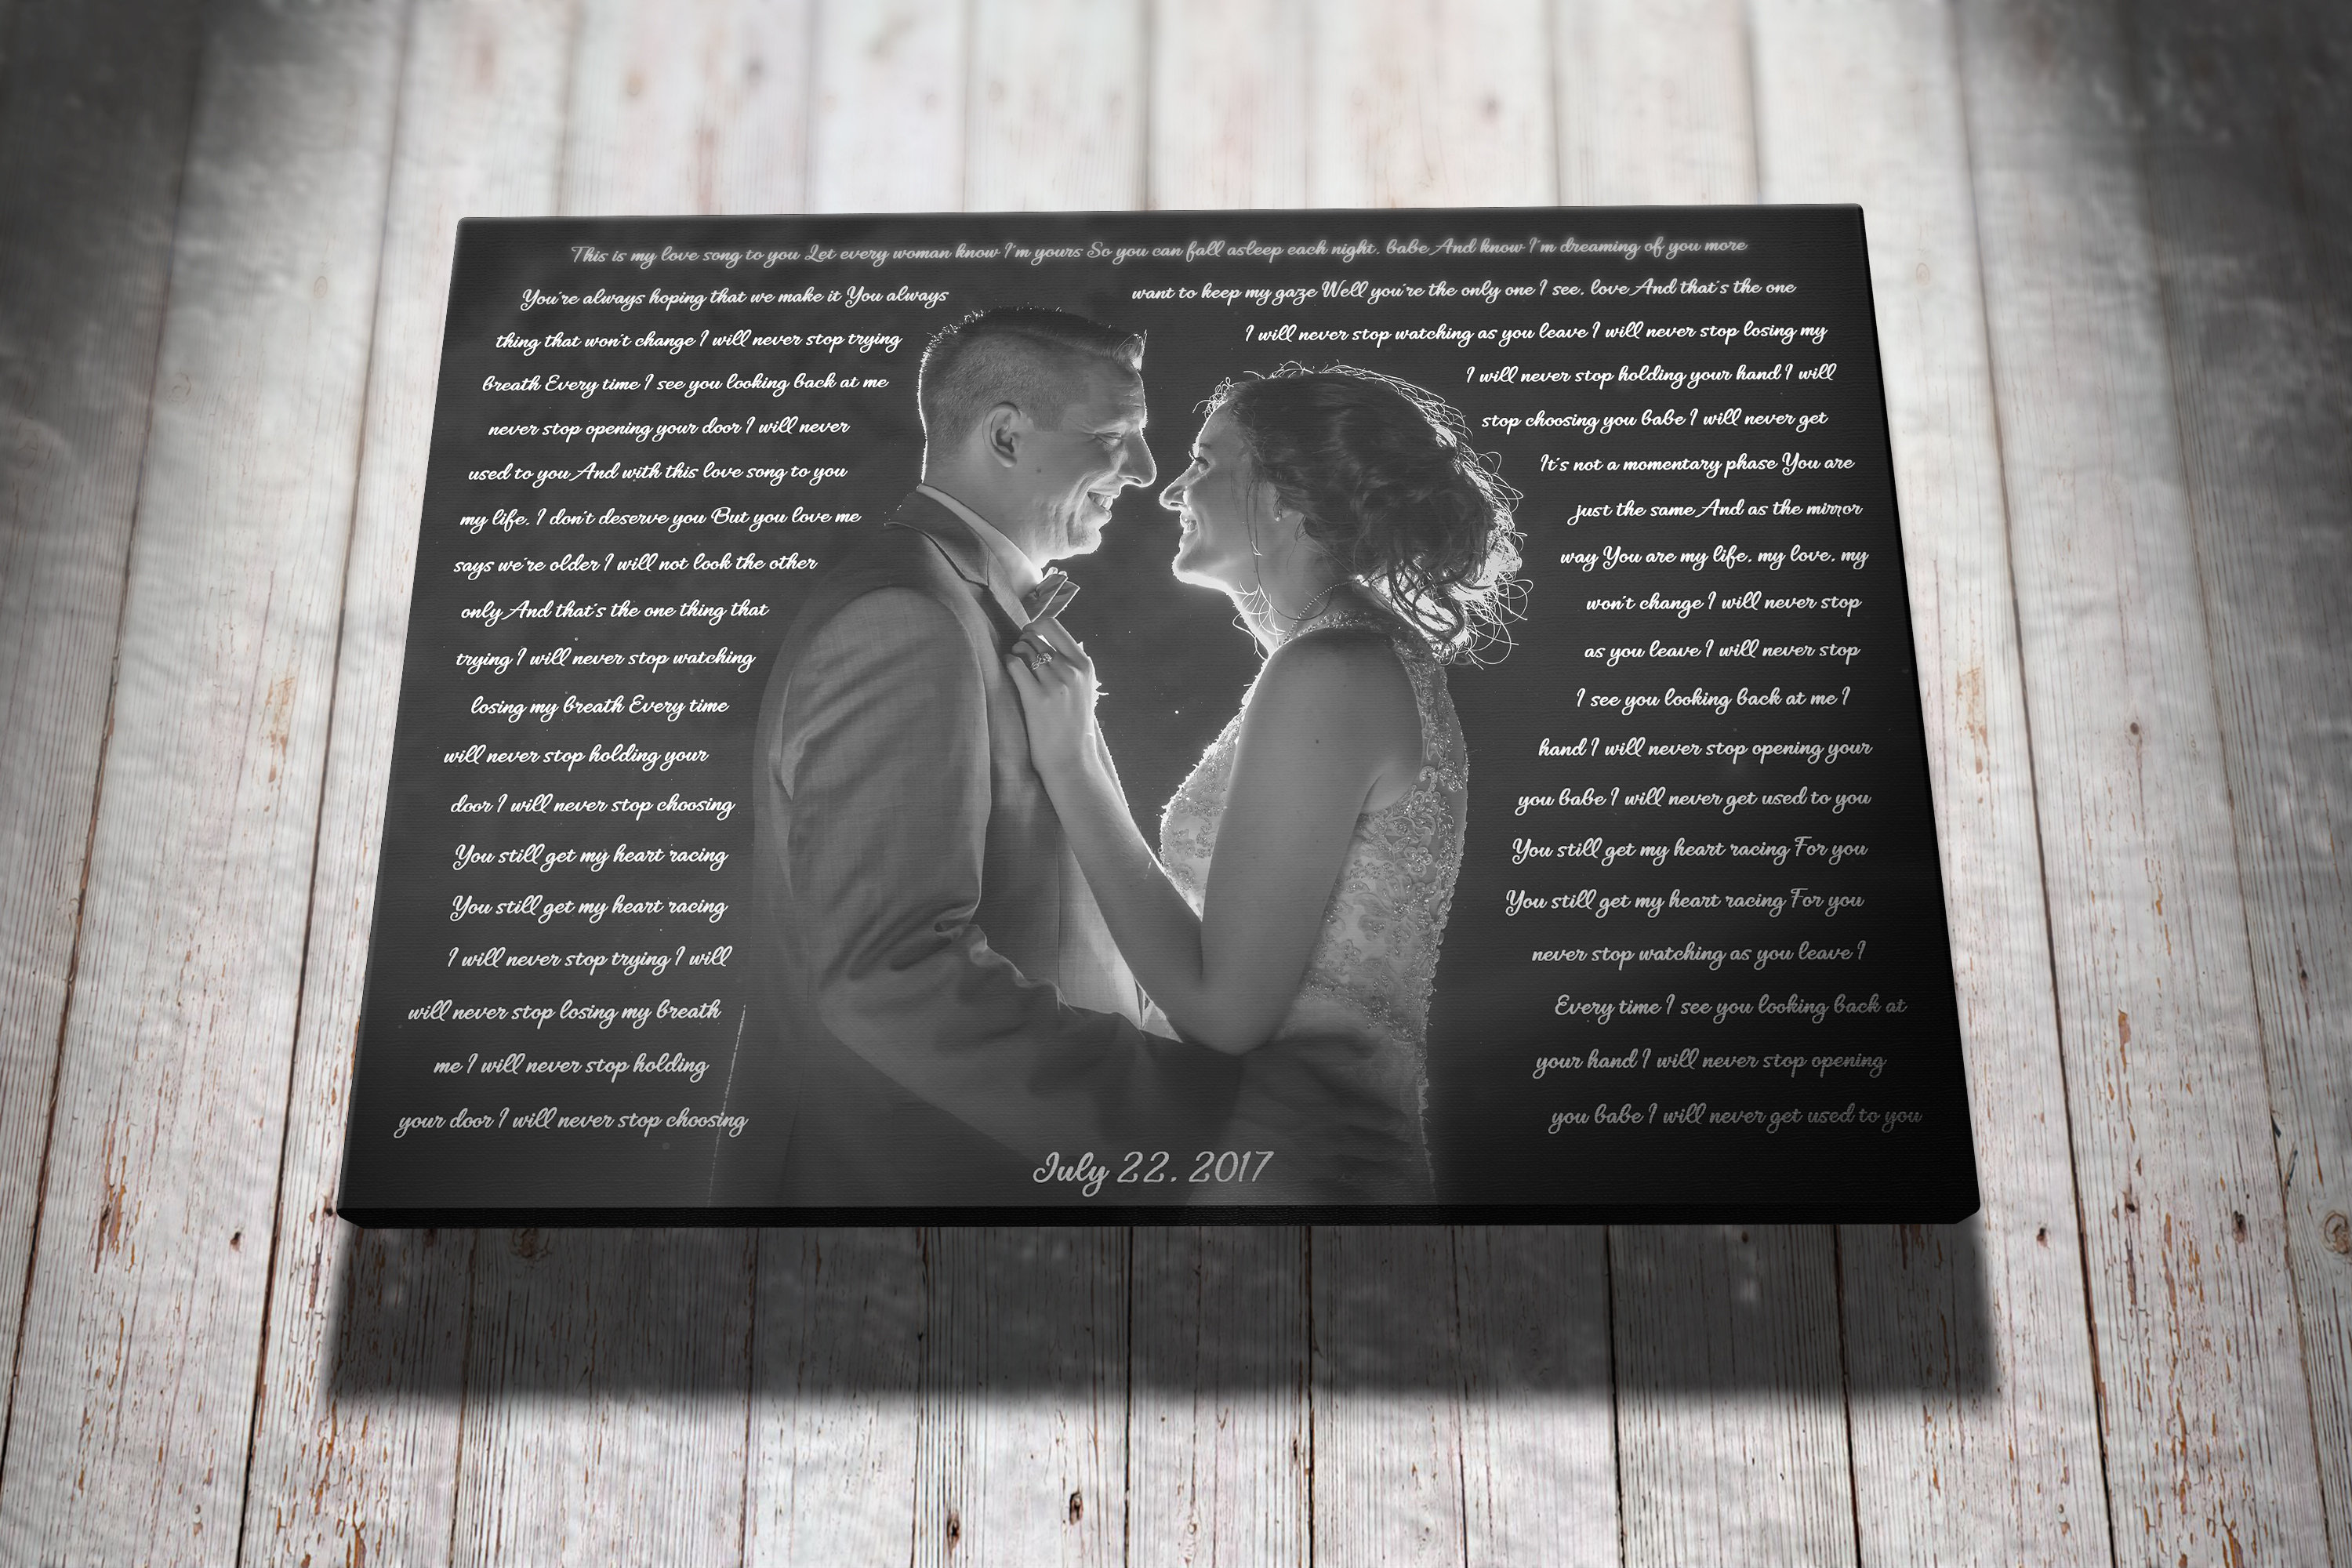 10th Wedding Anniversary Gifts For Husband: 10th Wedding Anniversary Gift For Husband